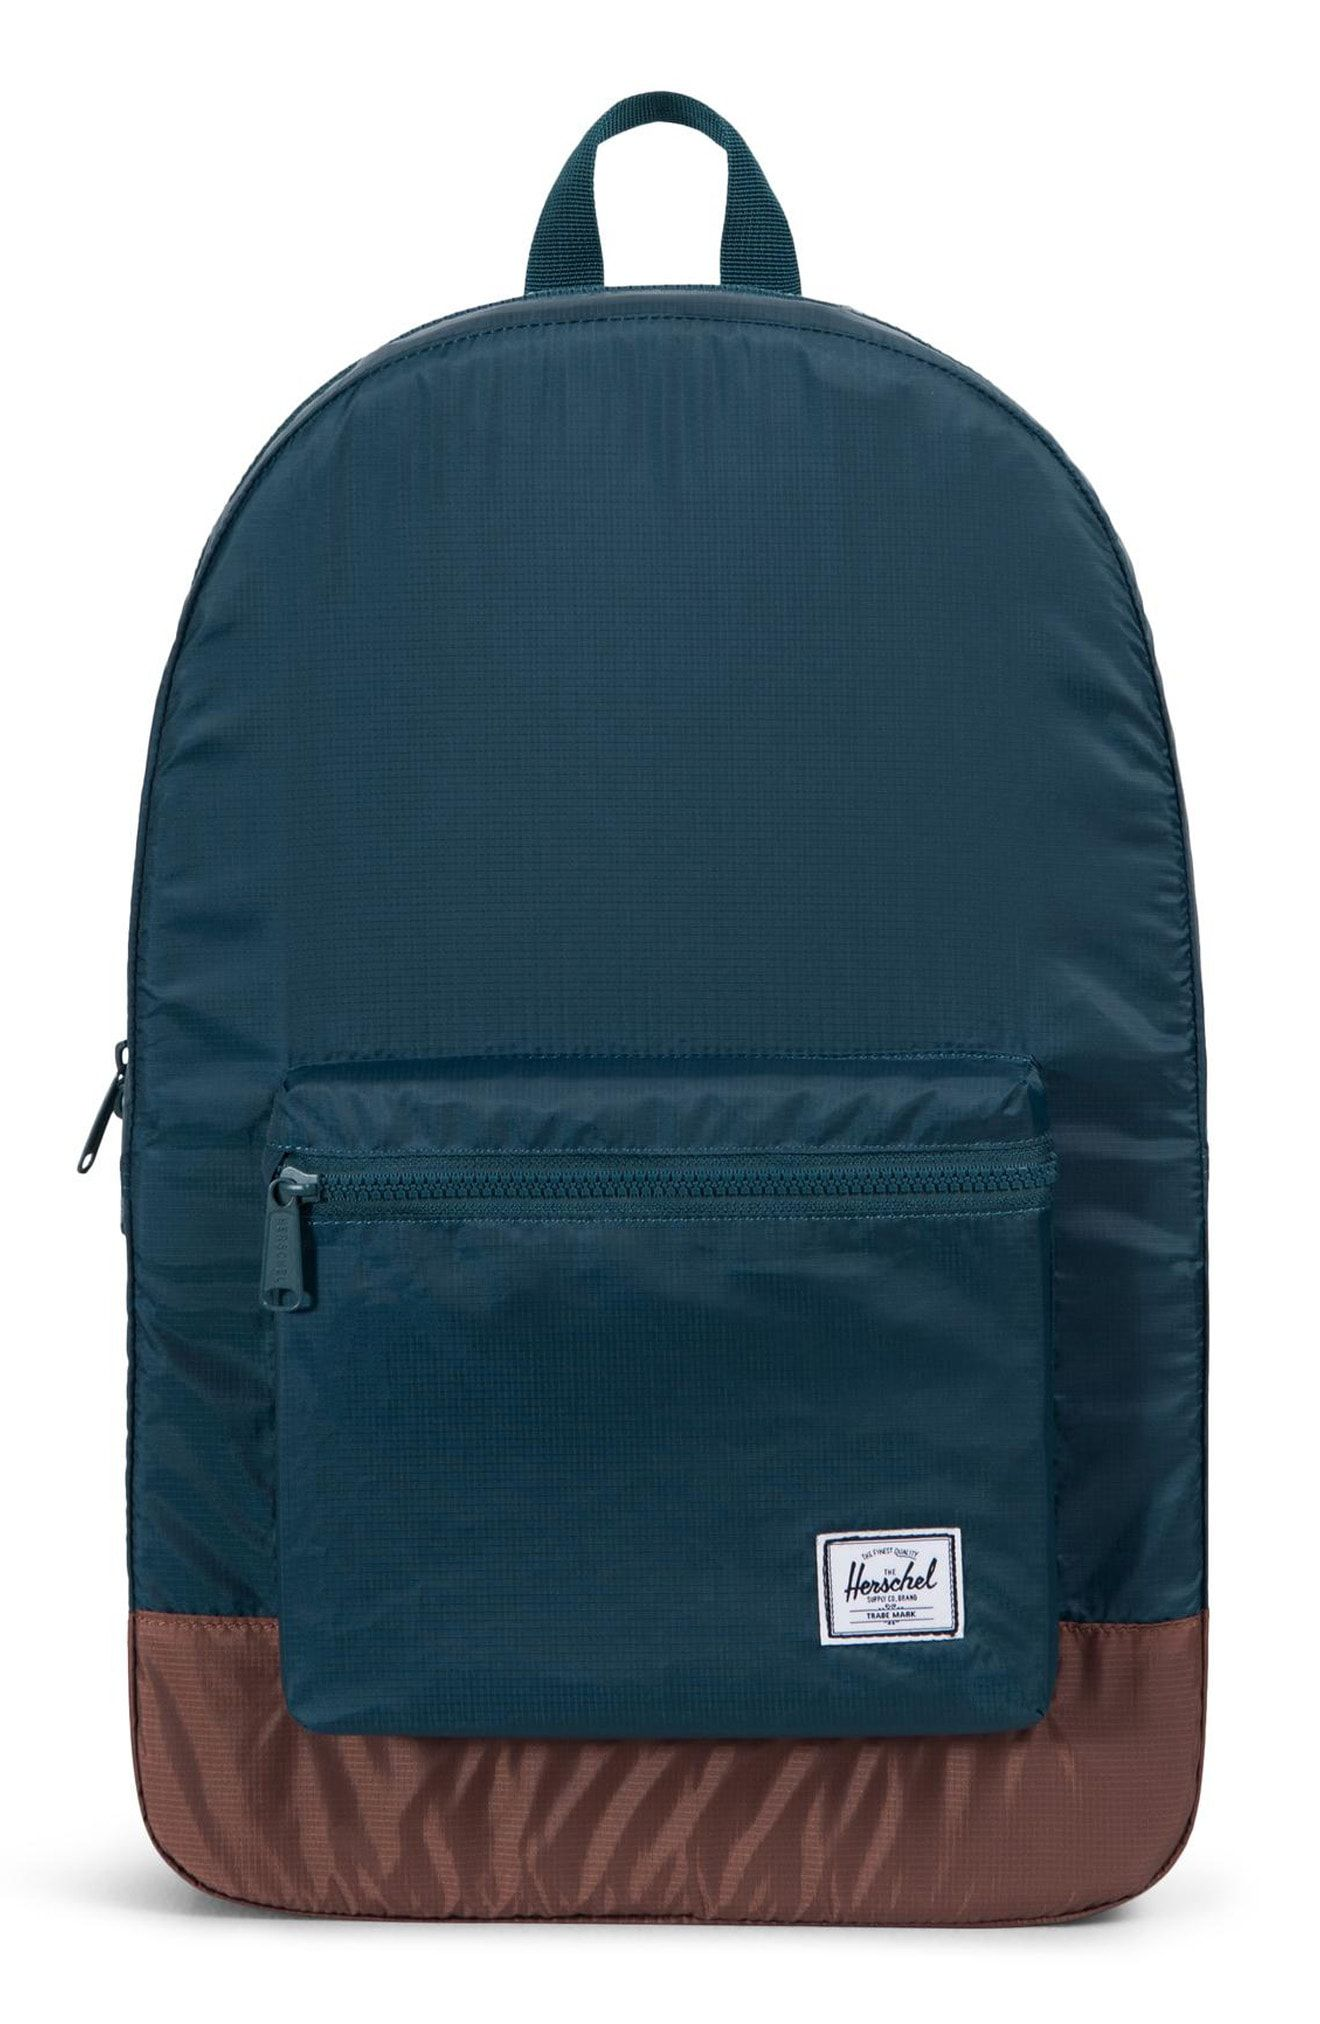 9f9c7f2d15ca HERSCHEL SUPPLY CO. PACKABLE DAYPACK - BLUE GREEN.  herschelsupplyco.  bags   backpacks